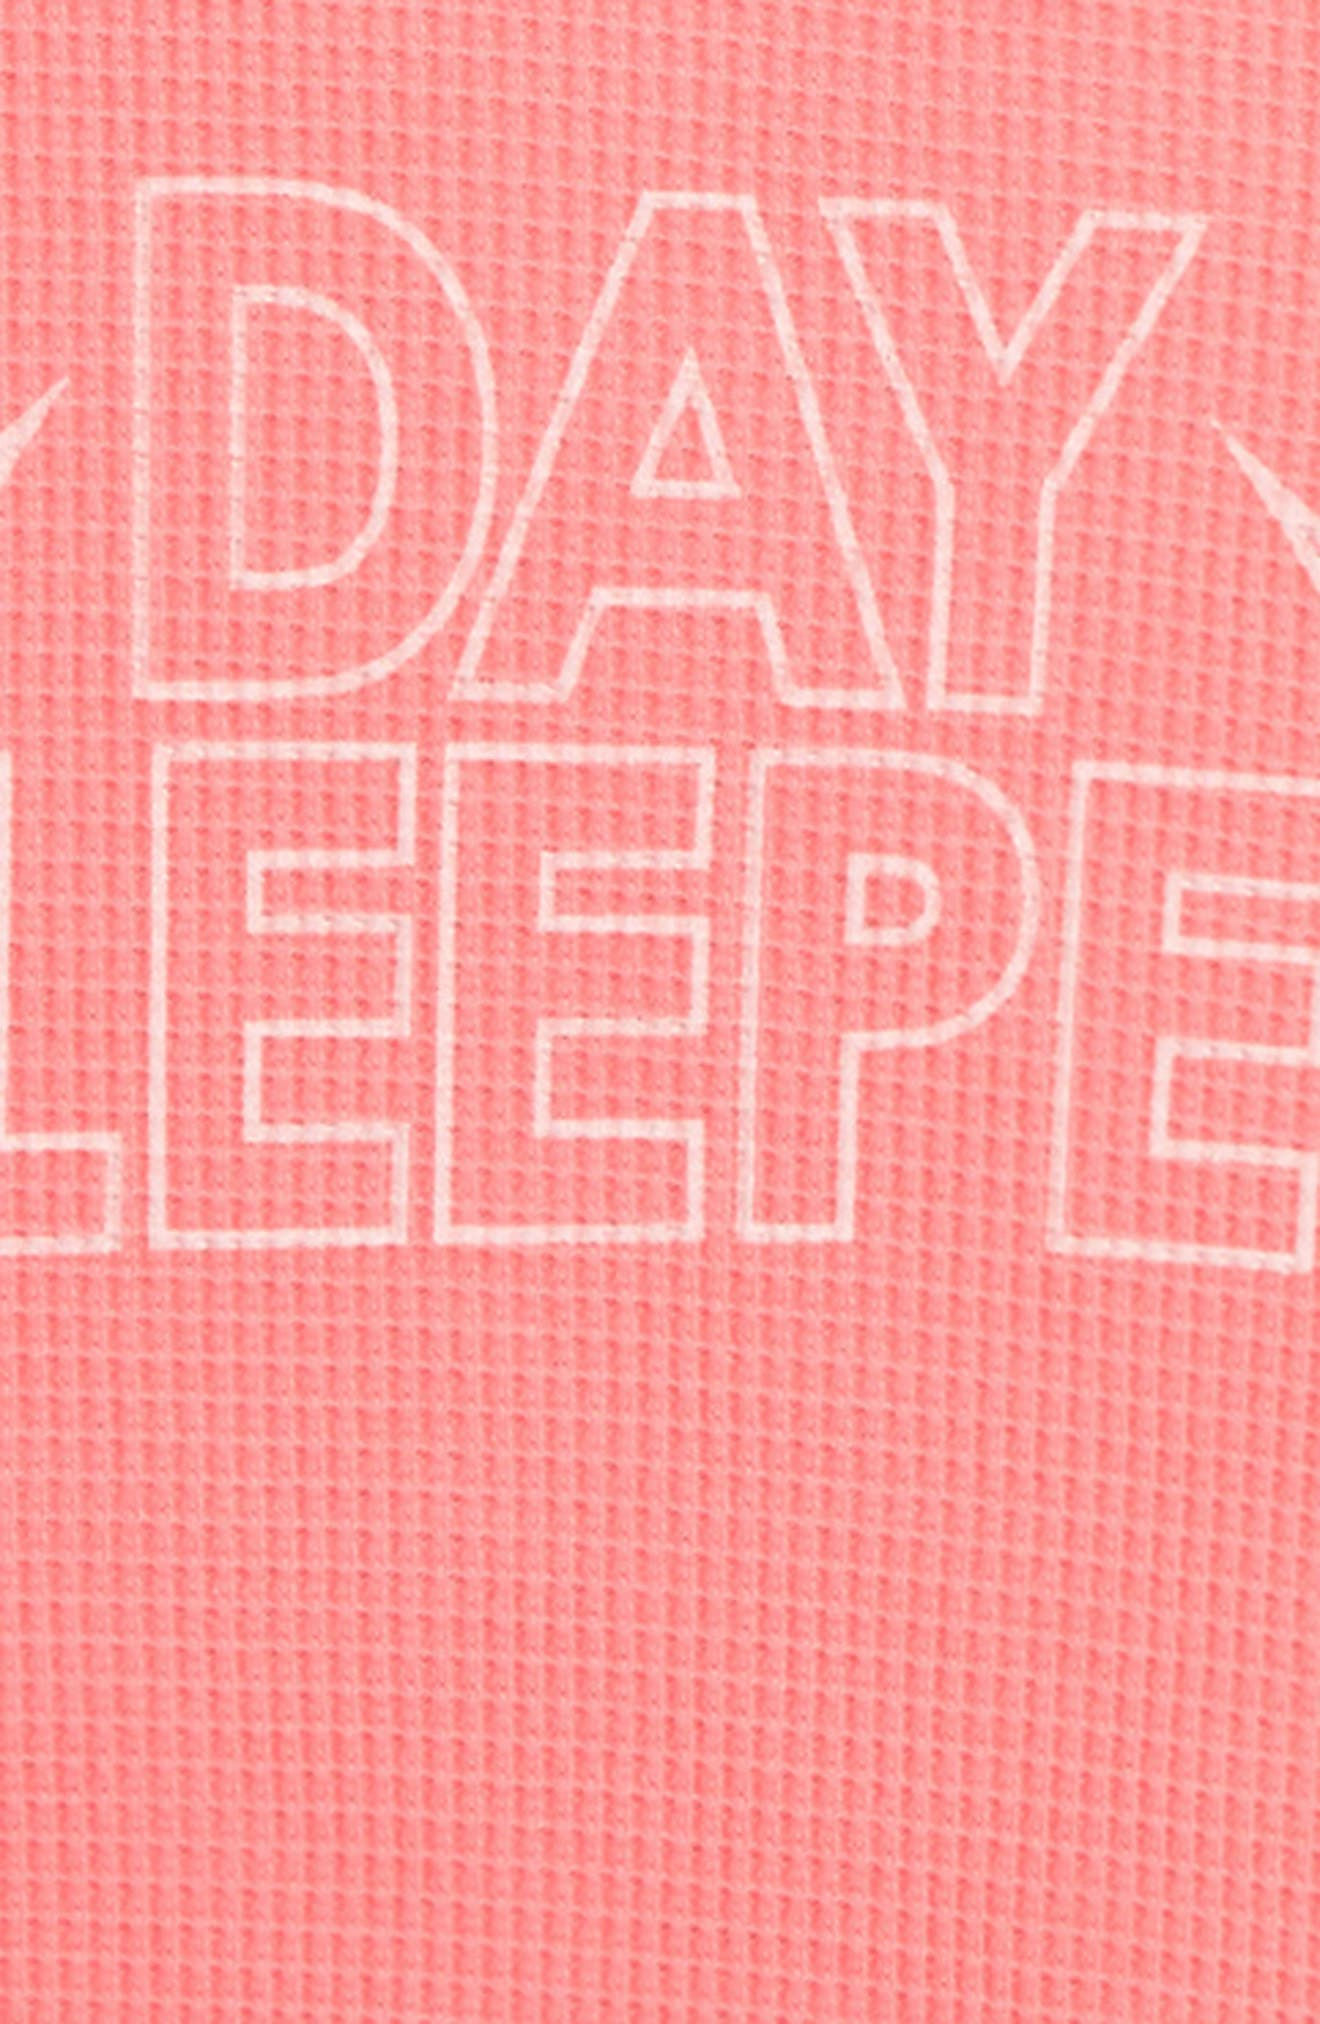 Day Sleeper Thermal Top,                             Alternate thumbnail 2, color,                             690